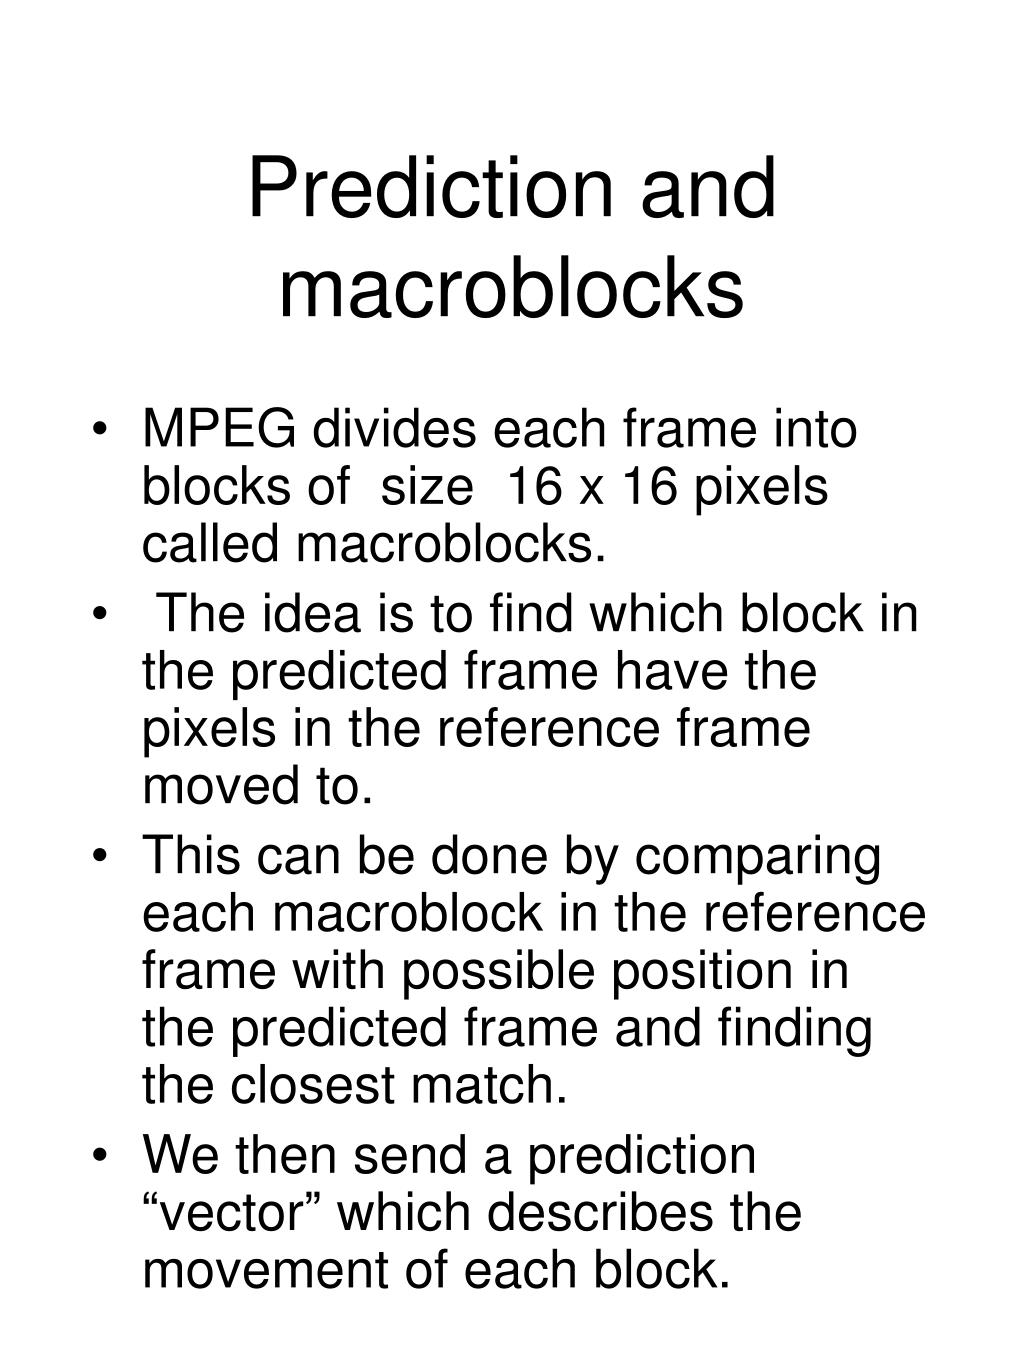 Prediction and macroblocks